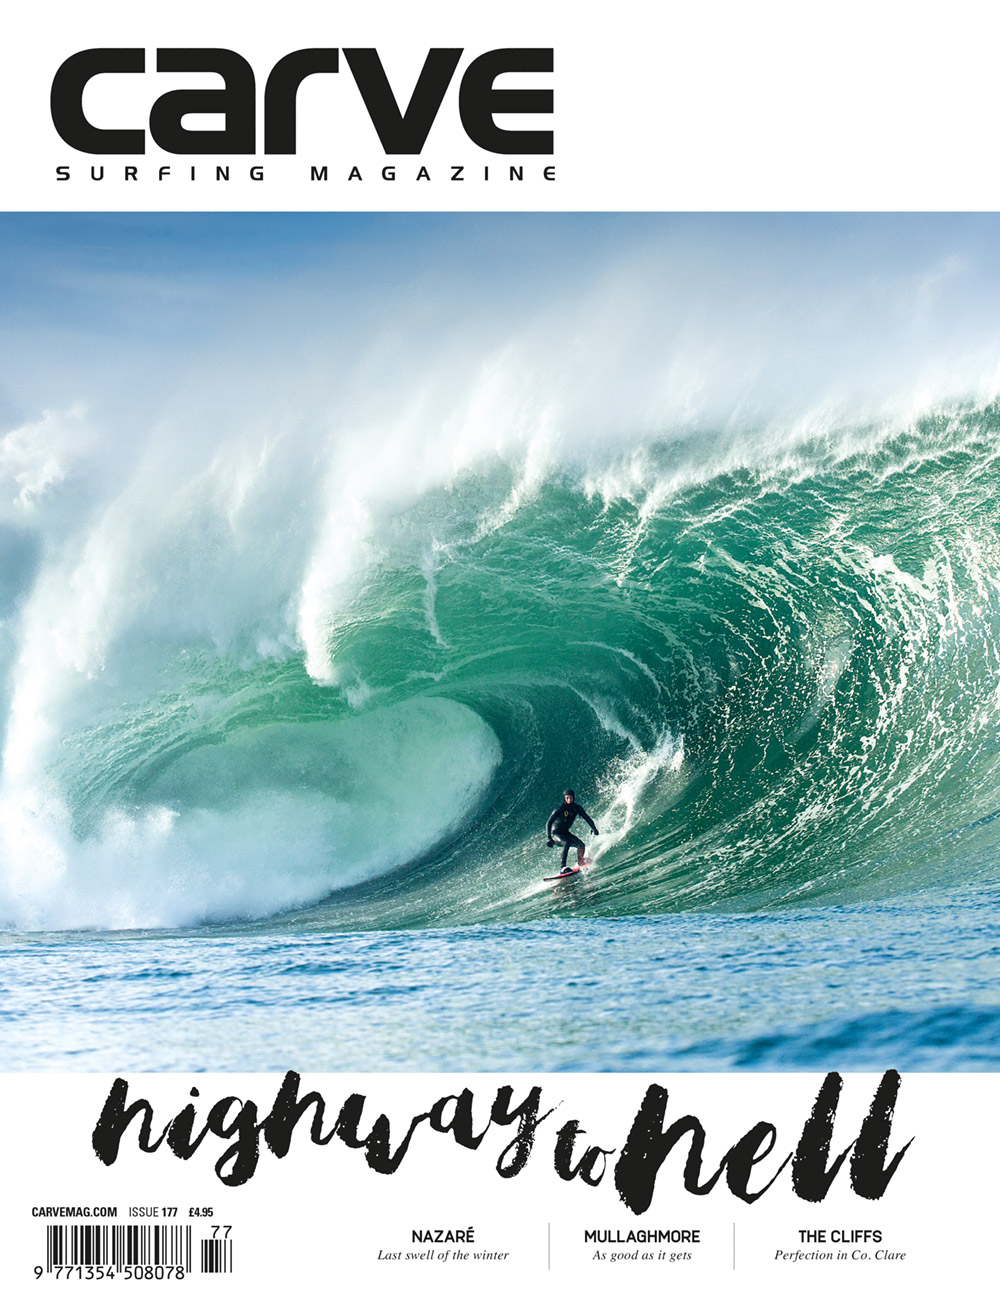 Carve Surfing Magazine